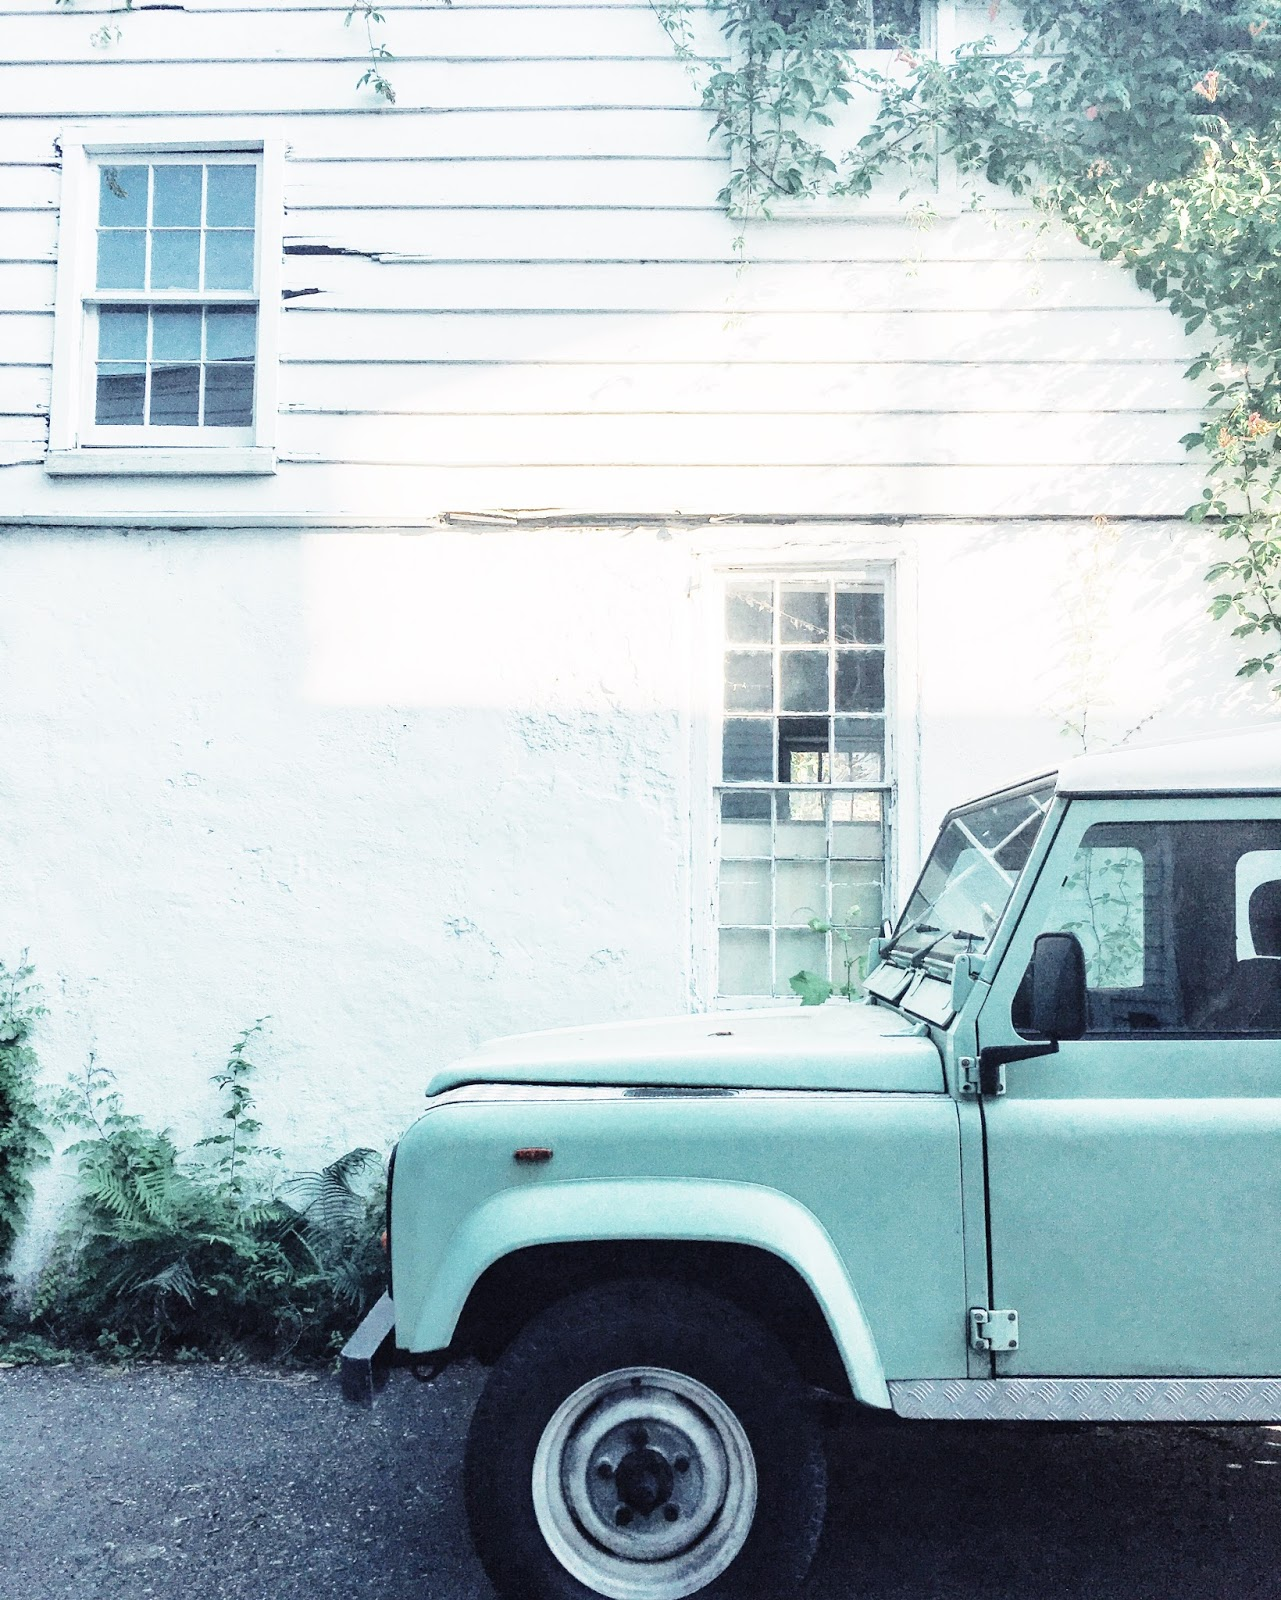 downtown charleston, old car, teal vintage jeep, pretty in the pines